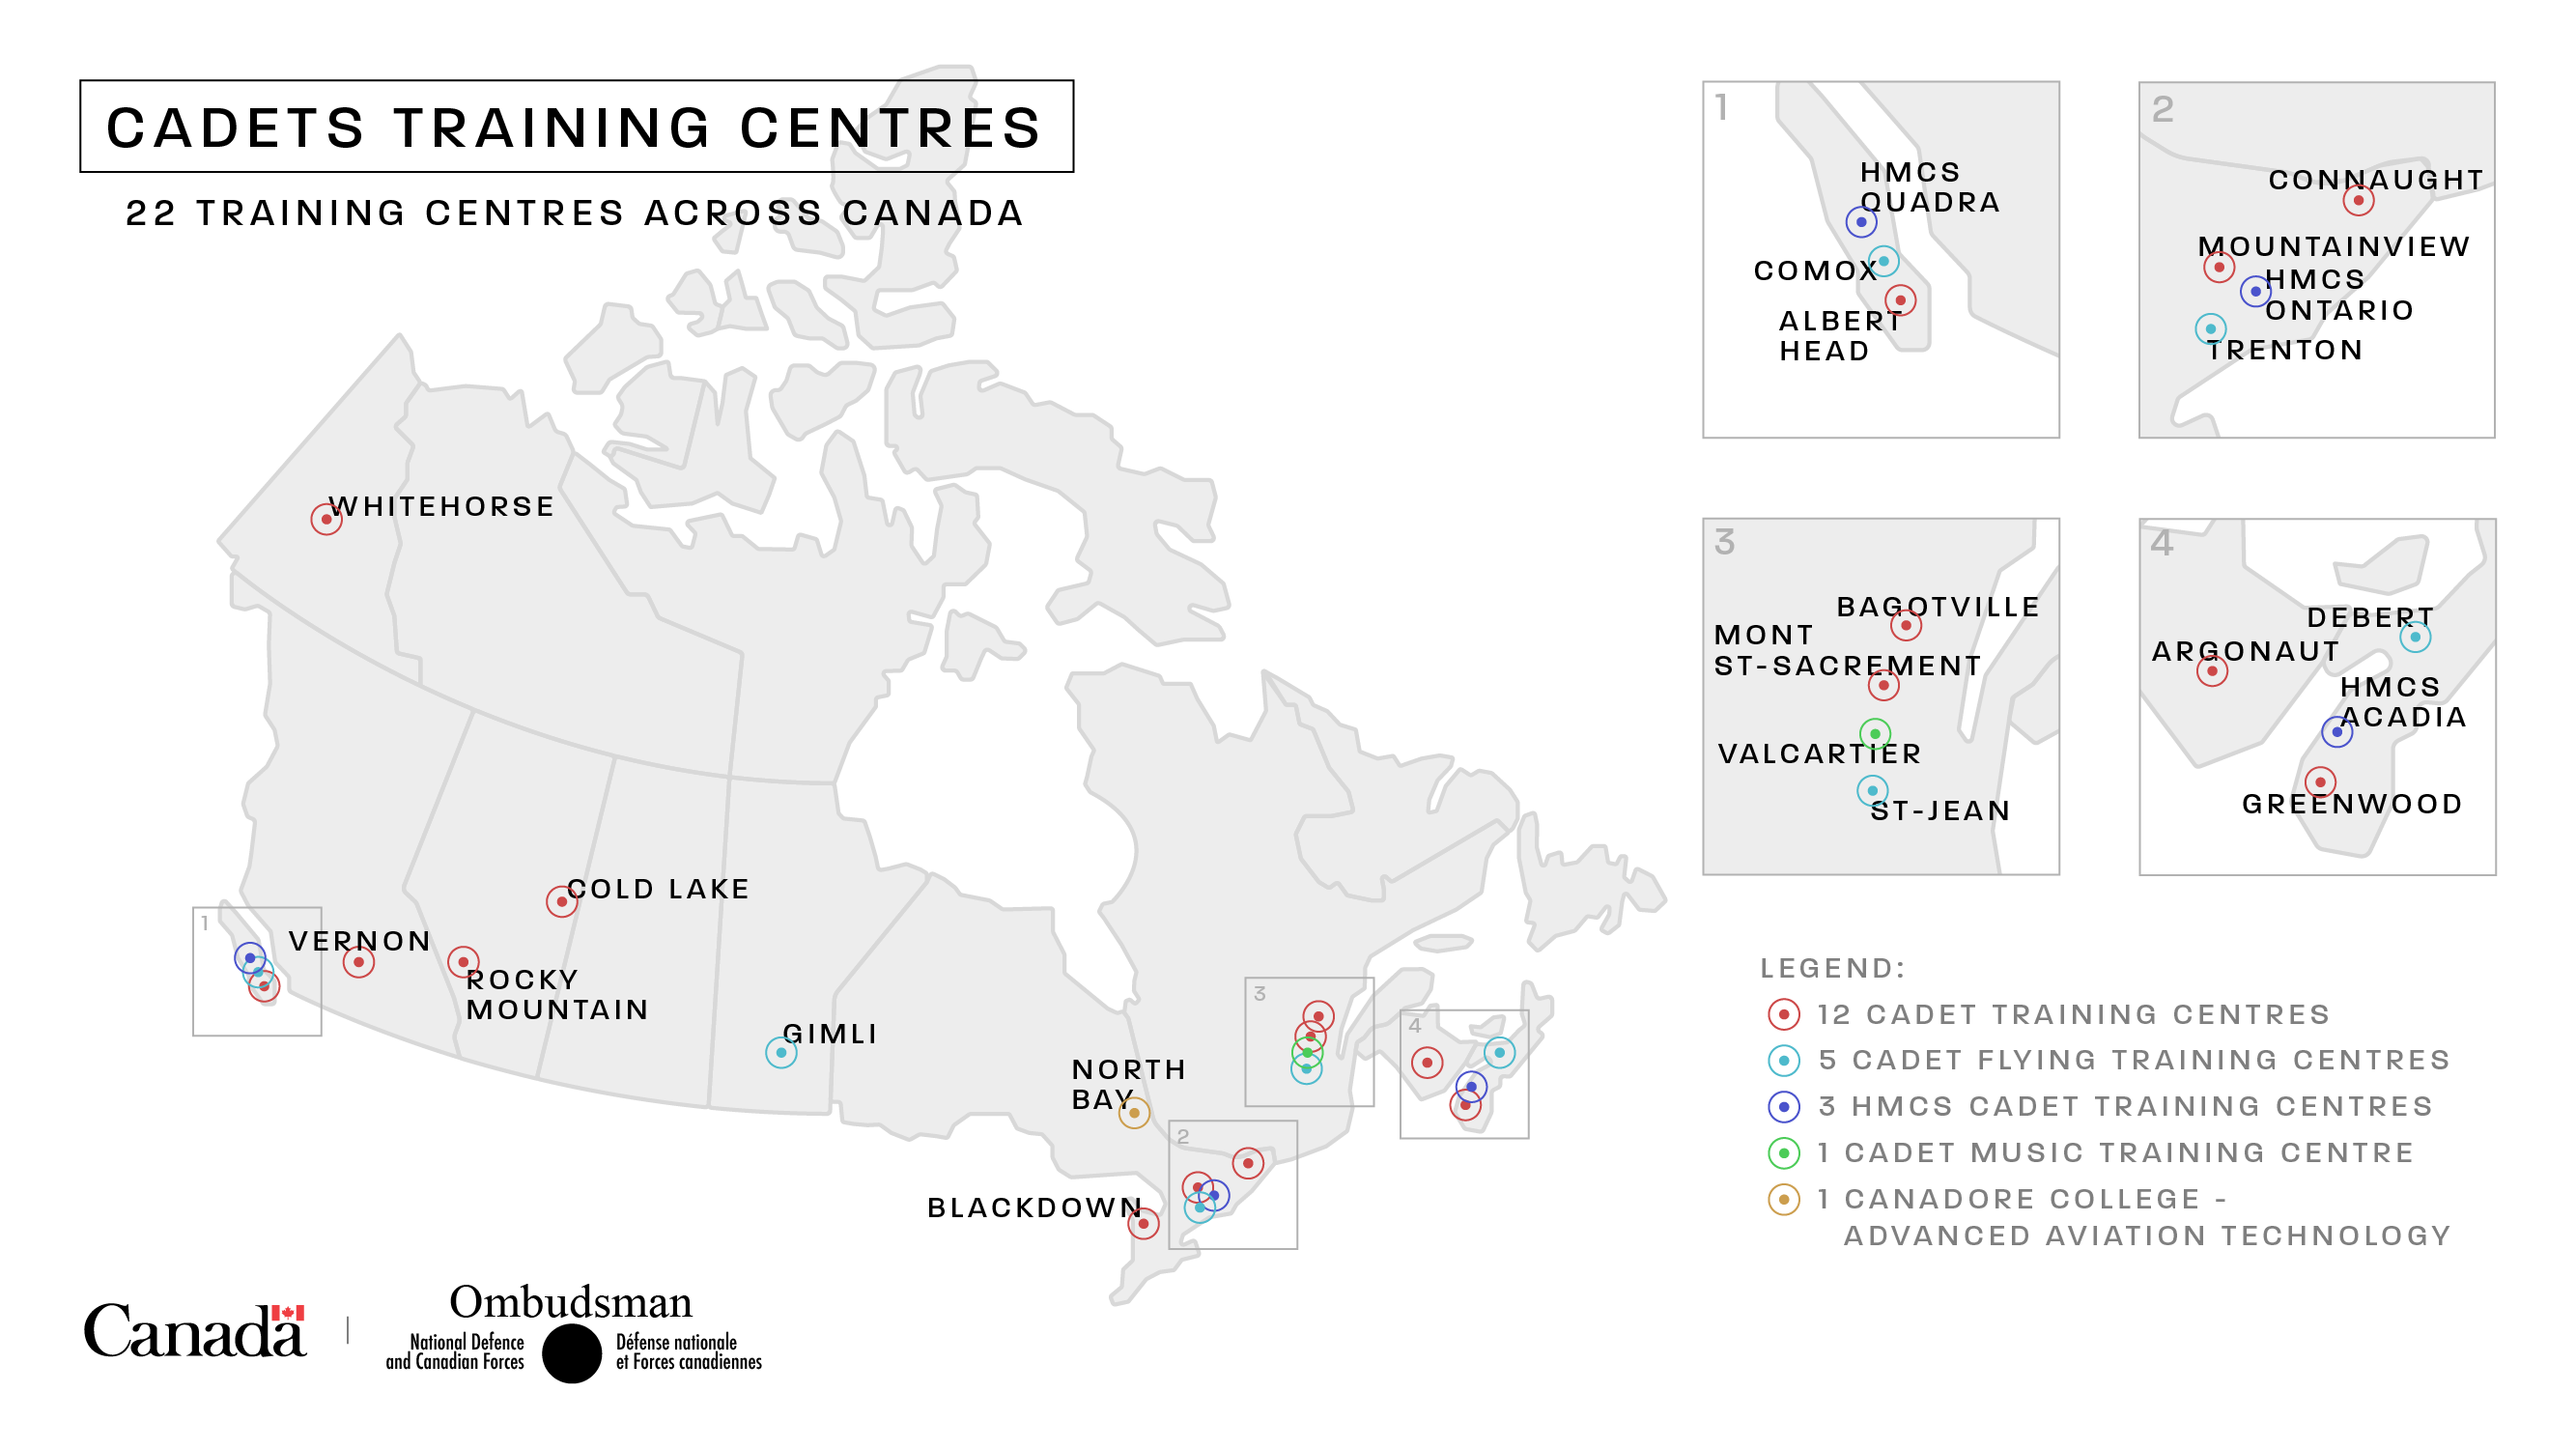 Map of Canada: Cadets Training Centres